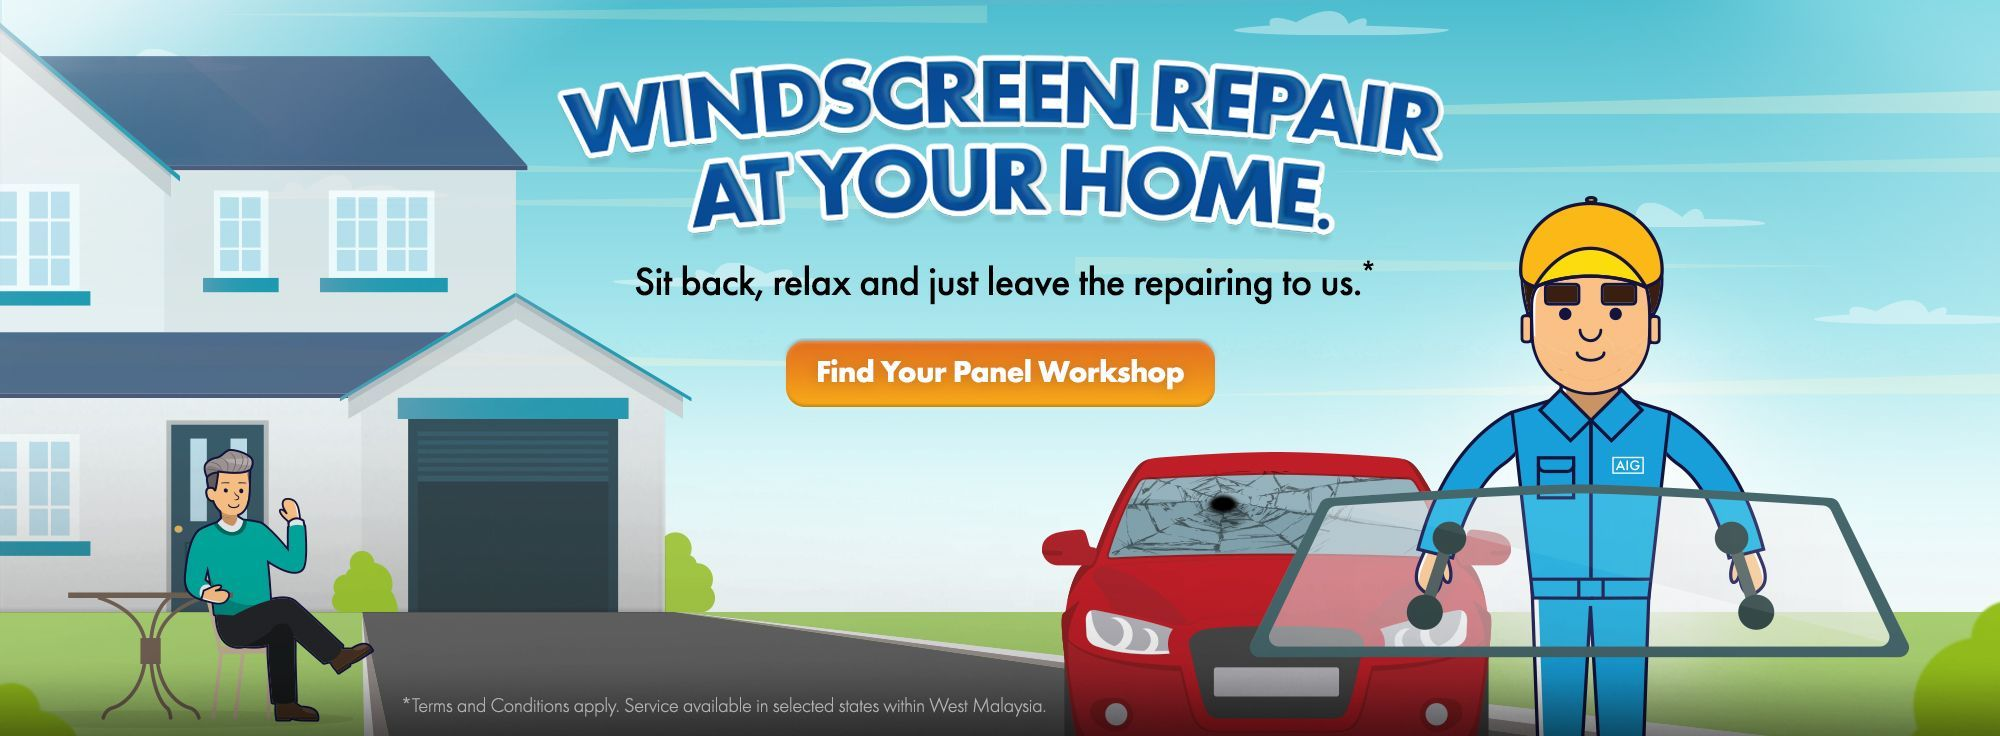 Windscreen Repair Panel